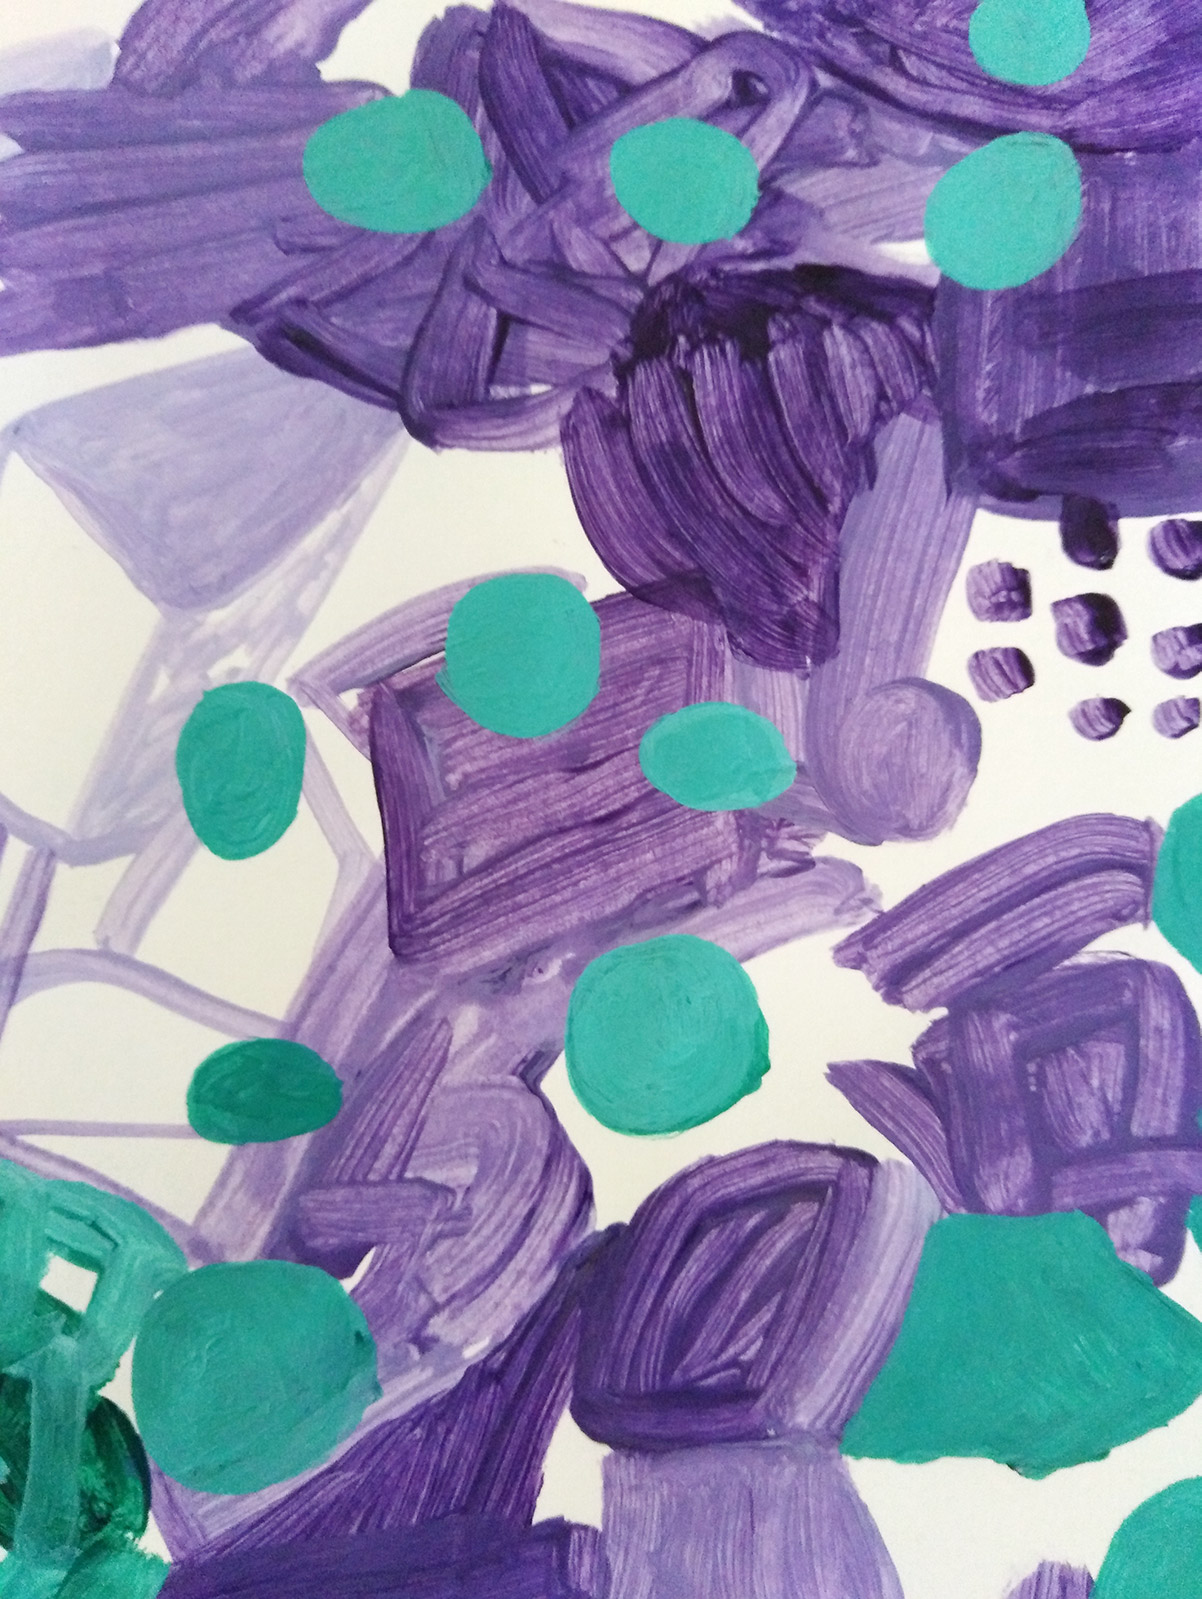 A page from my sketchbook with green paint on top of purple brush marks.